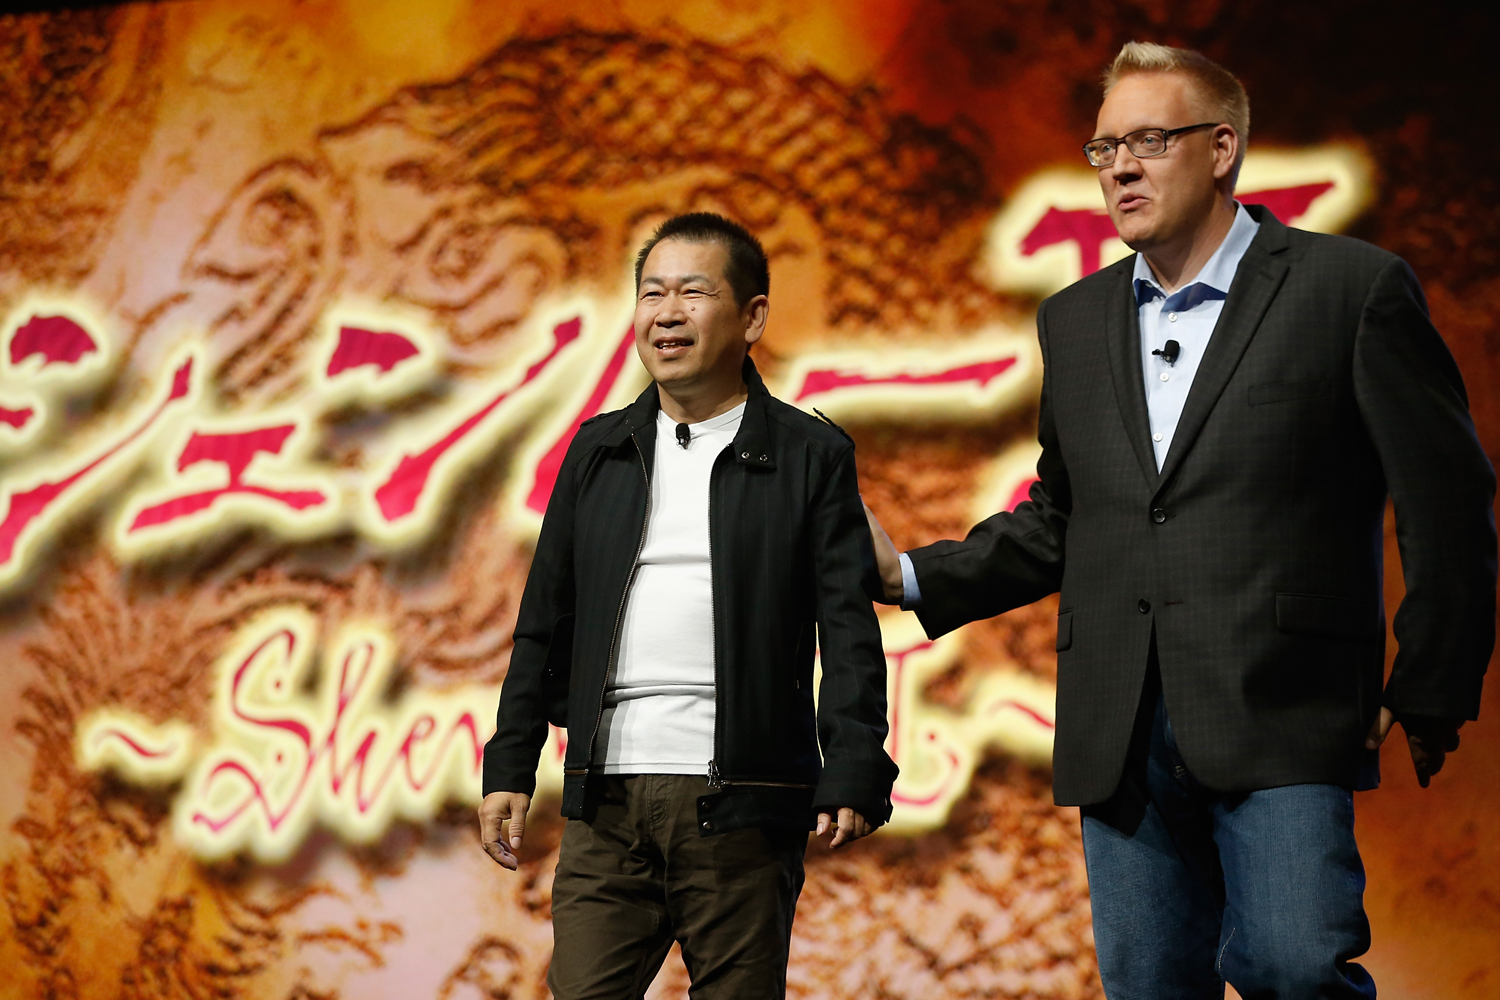 Game designer Yu Suzuki and Sony Computer Entertainment America vice president of publisher and developer relations, Adam Boyes discus  Shenmue 3  during the Sony E3 press conference at the  L.A. Memorial Sports Arena on June 15, 2015 in Los Angeles, California.